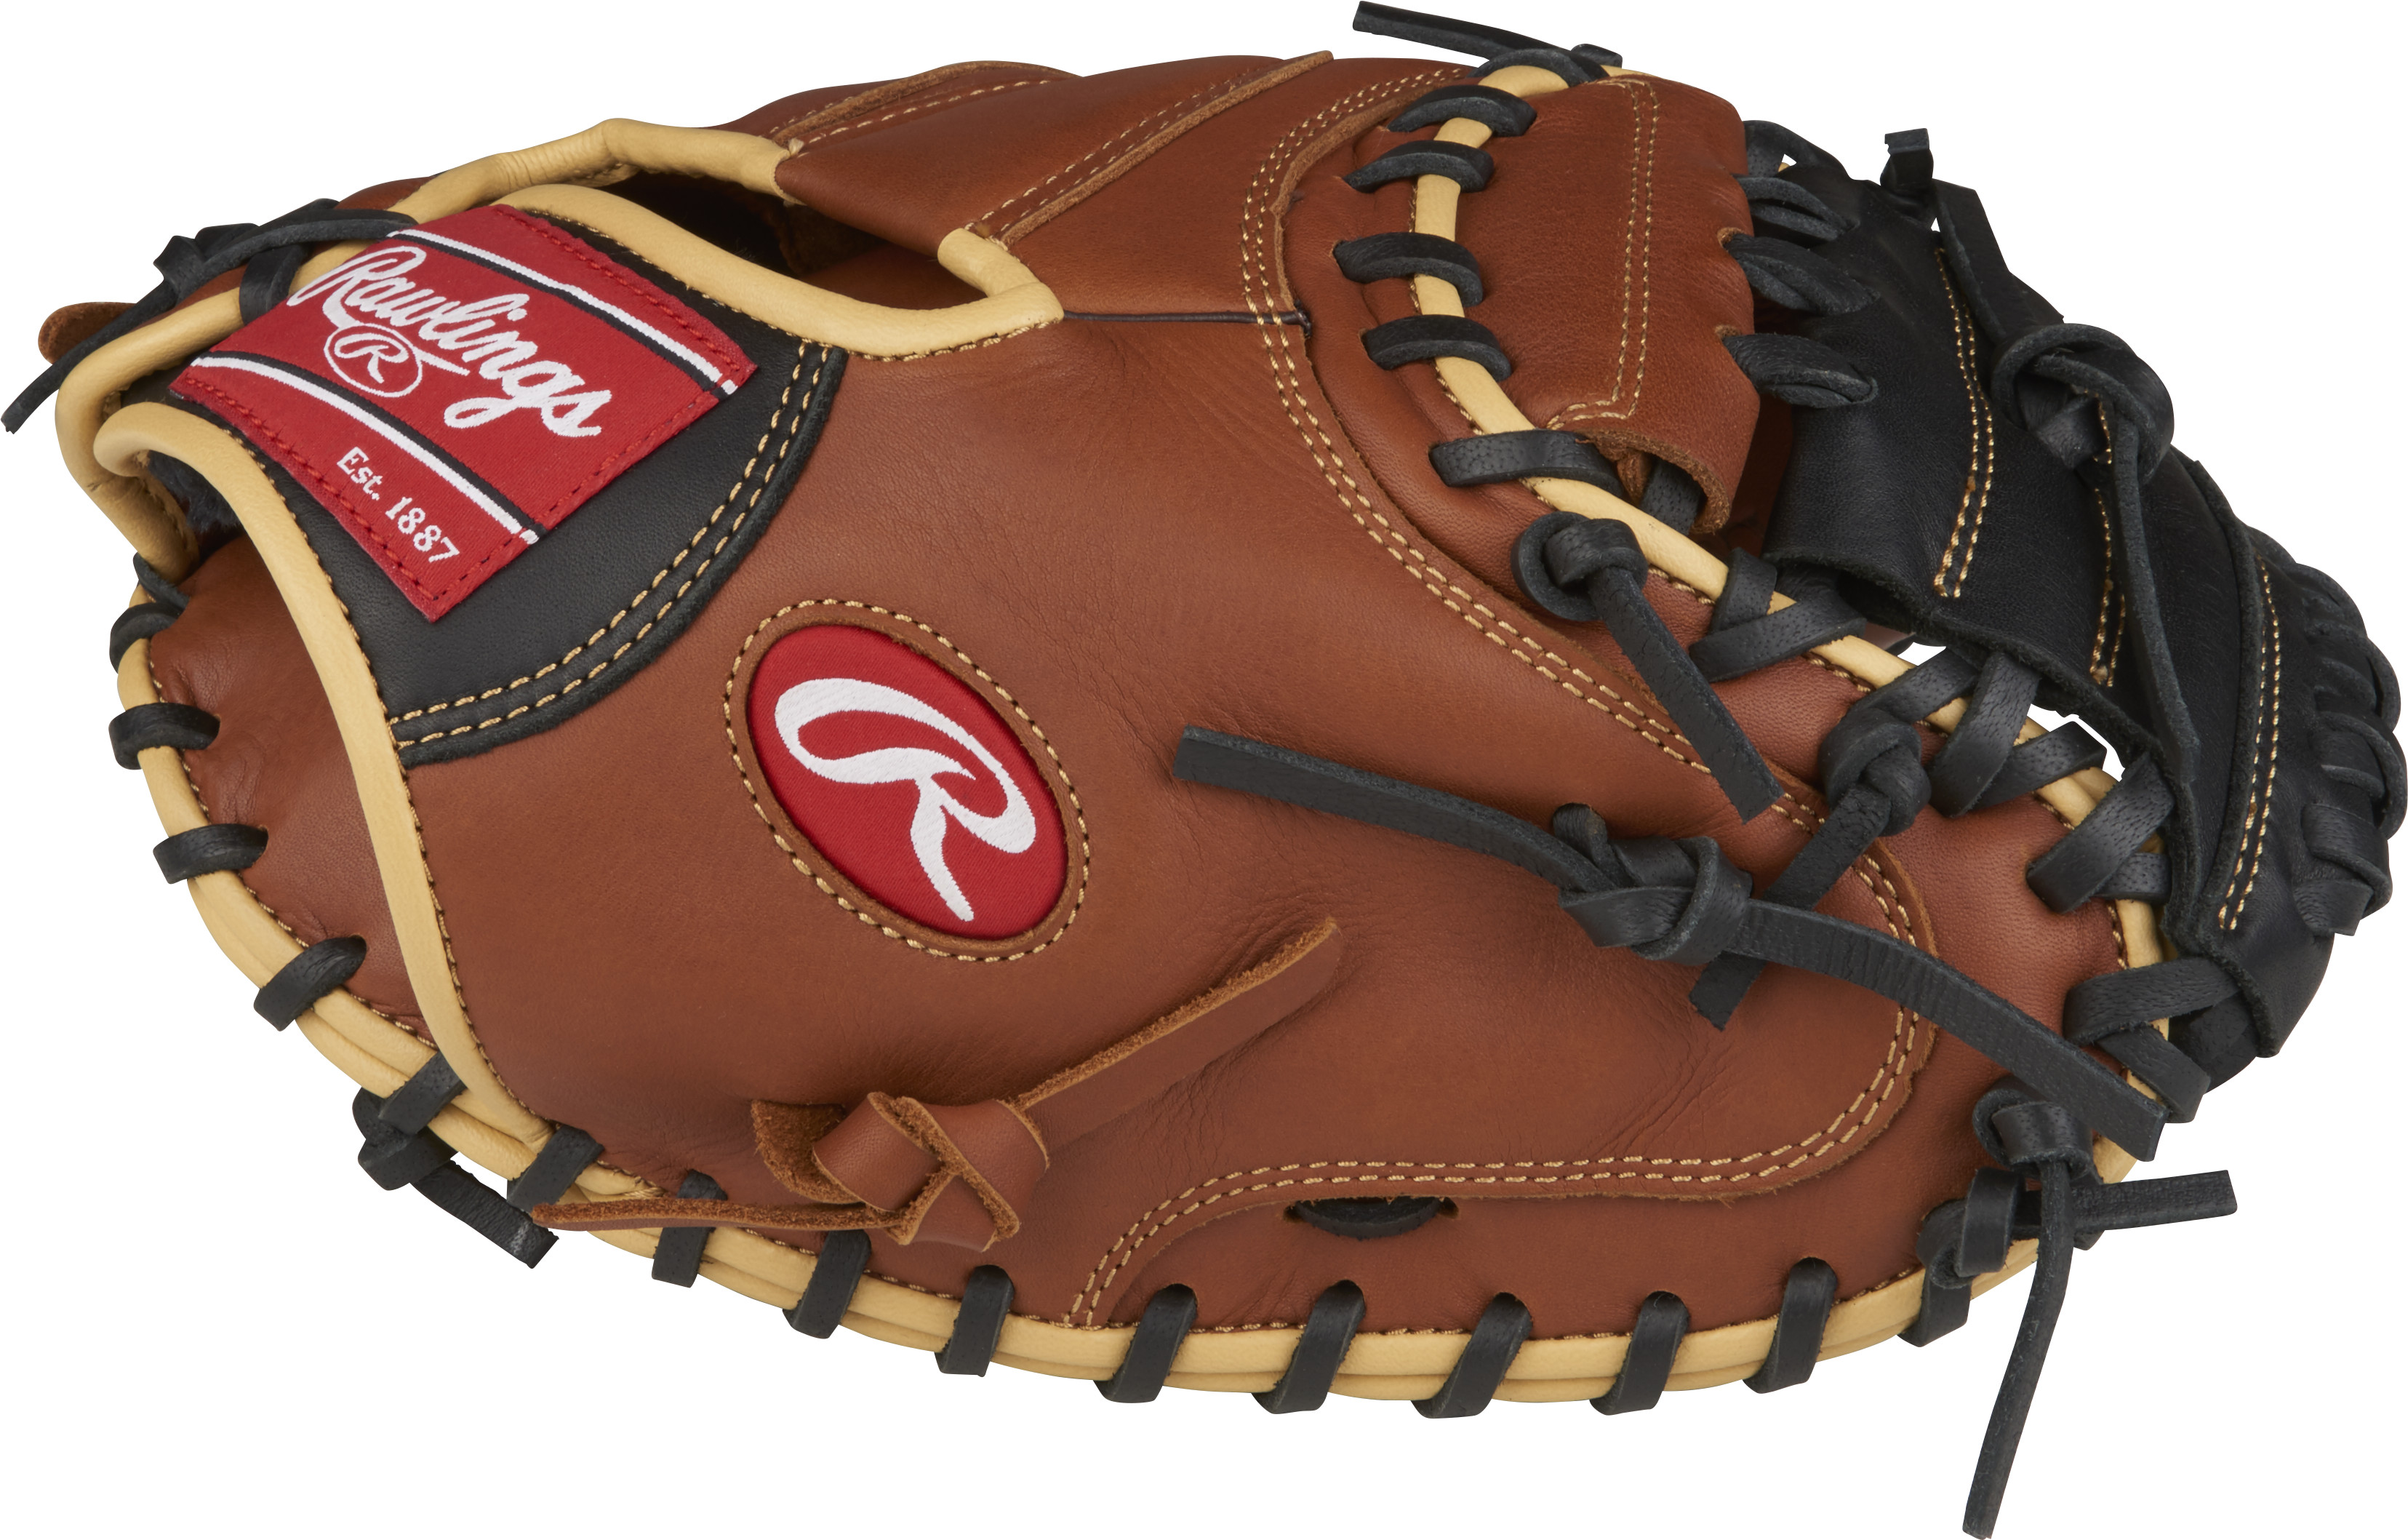 http://www.bestbatdeals.com/images/gloves/rawlings/SCM33S-3.jpg